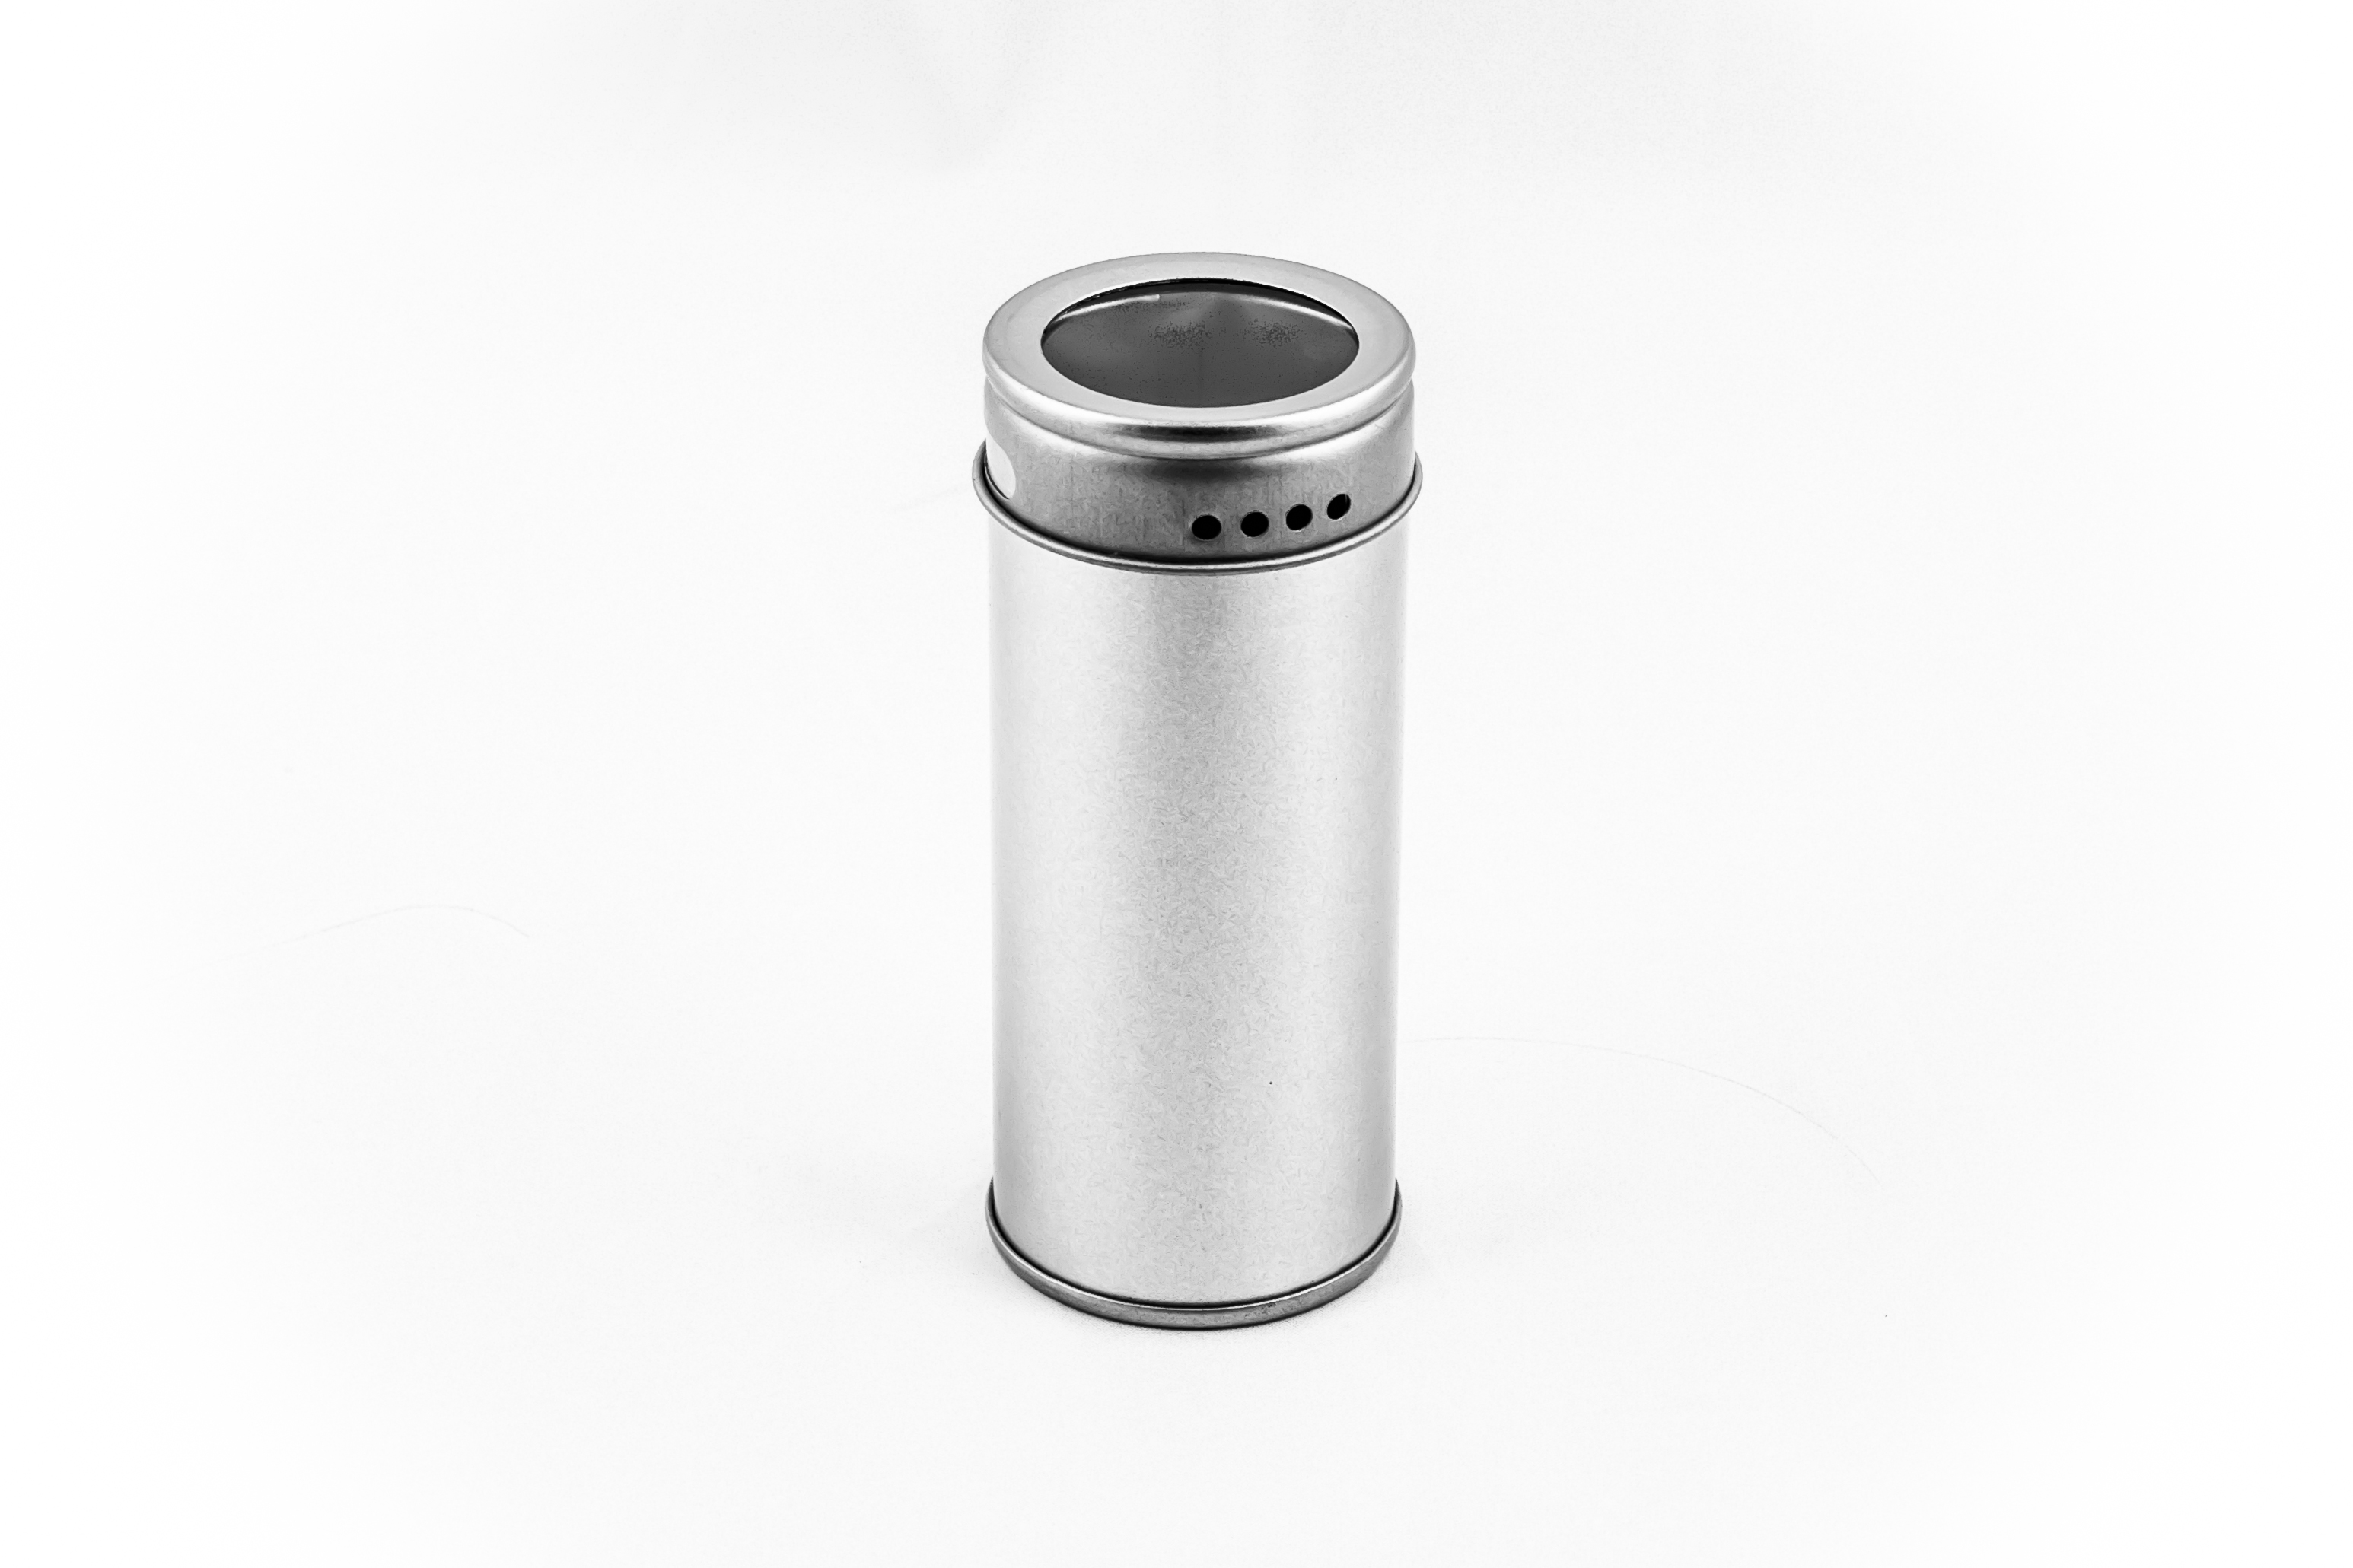 Small spice tin with window and dispenser openings